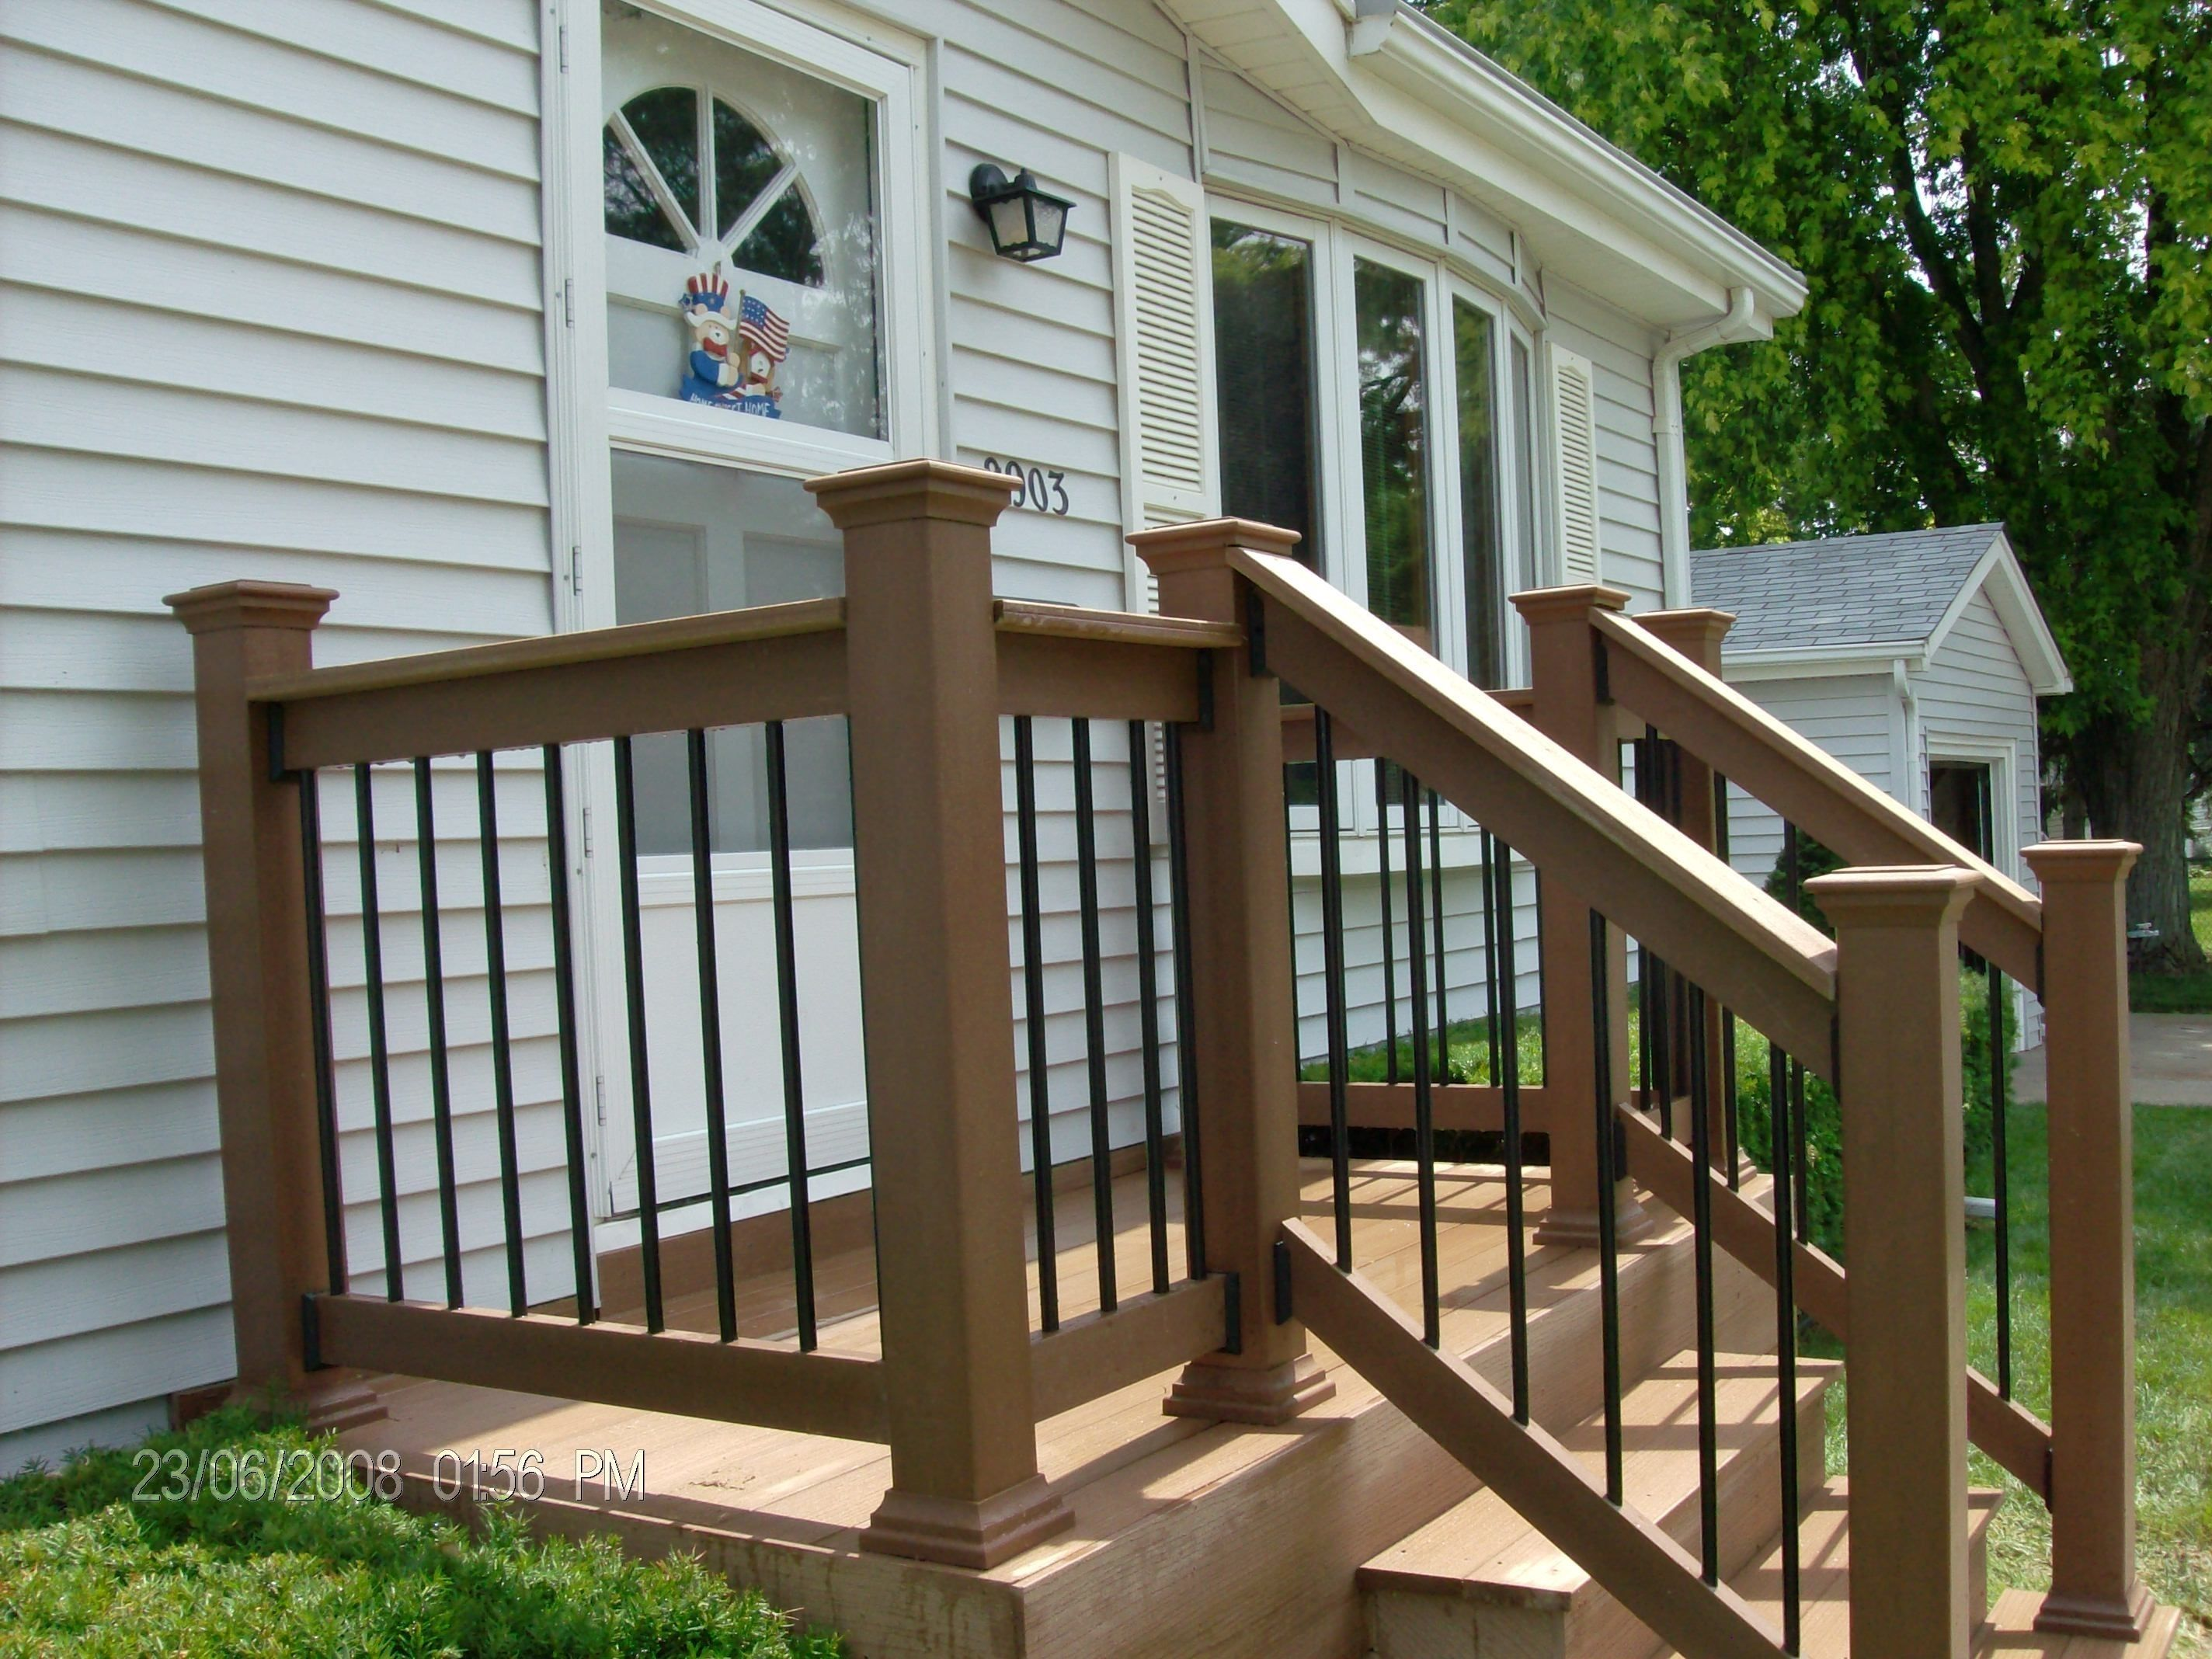 Best Of Front Porch Handrail Designs Gf08K9E Https | Exterior Wood Handrail Designs | Exterior Railing Iron | Style Stainless Steel Wood | Wooden | Contemporary Wood | Modern